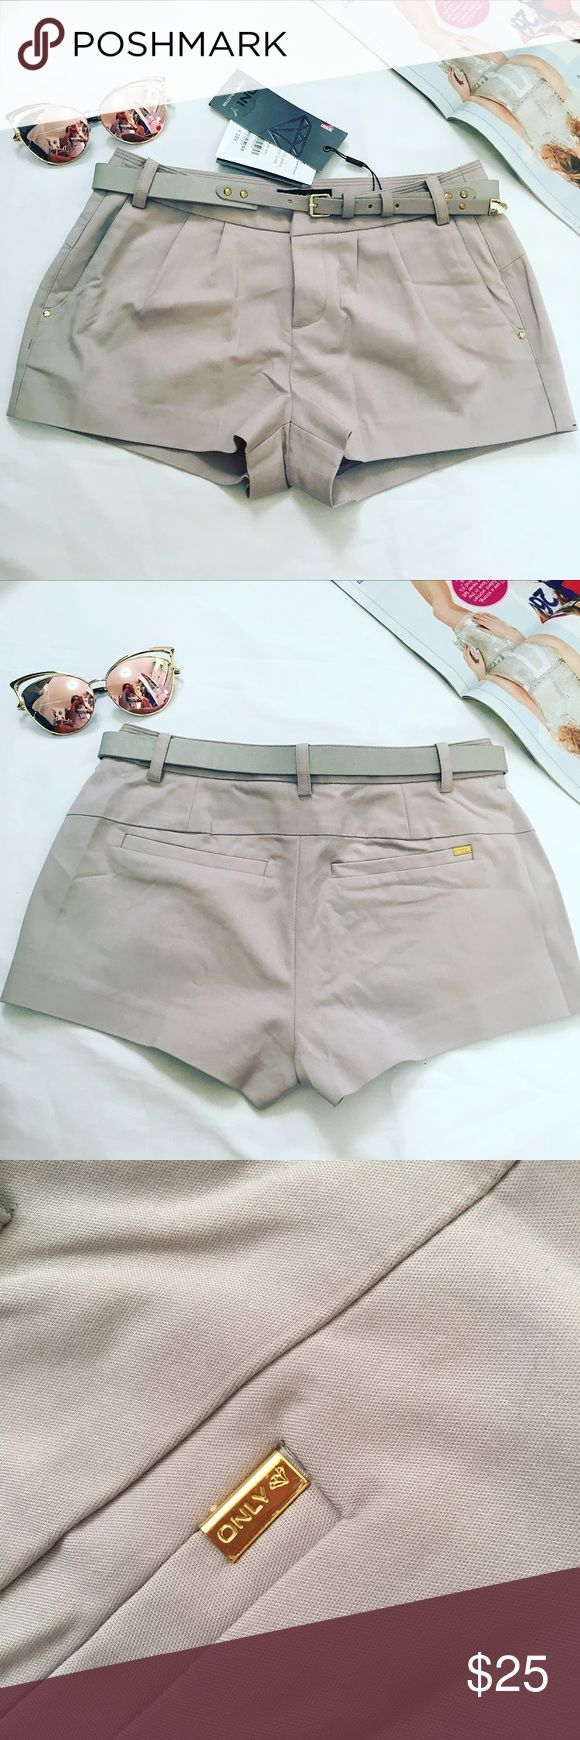 Only Jeans Grey Shorts with belt Brand new with tags Shorts Jean Shorts